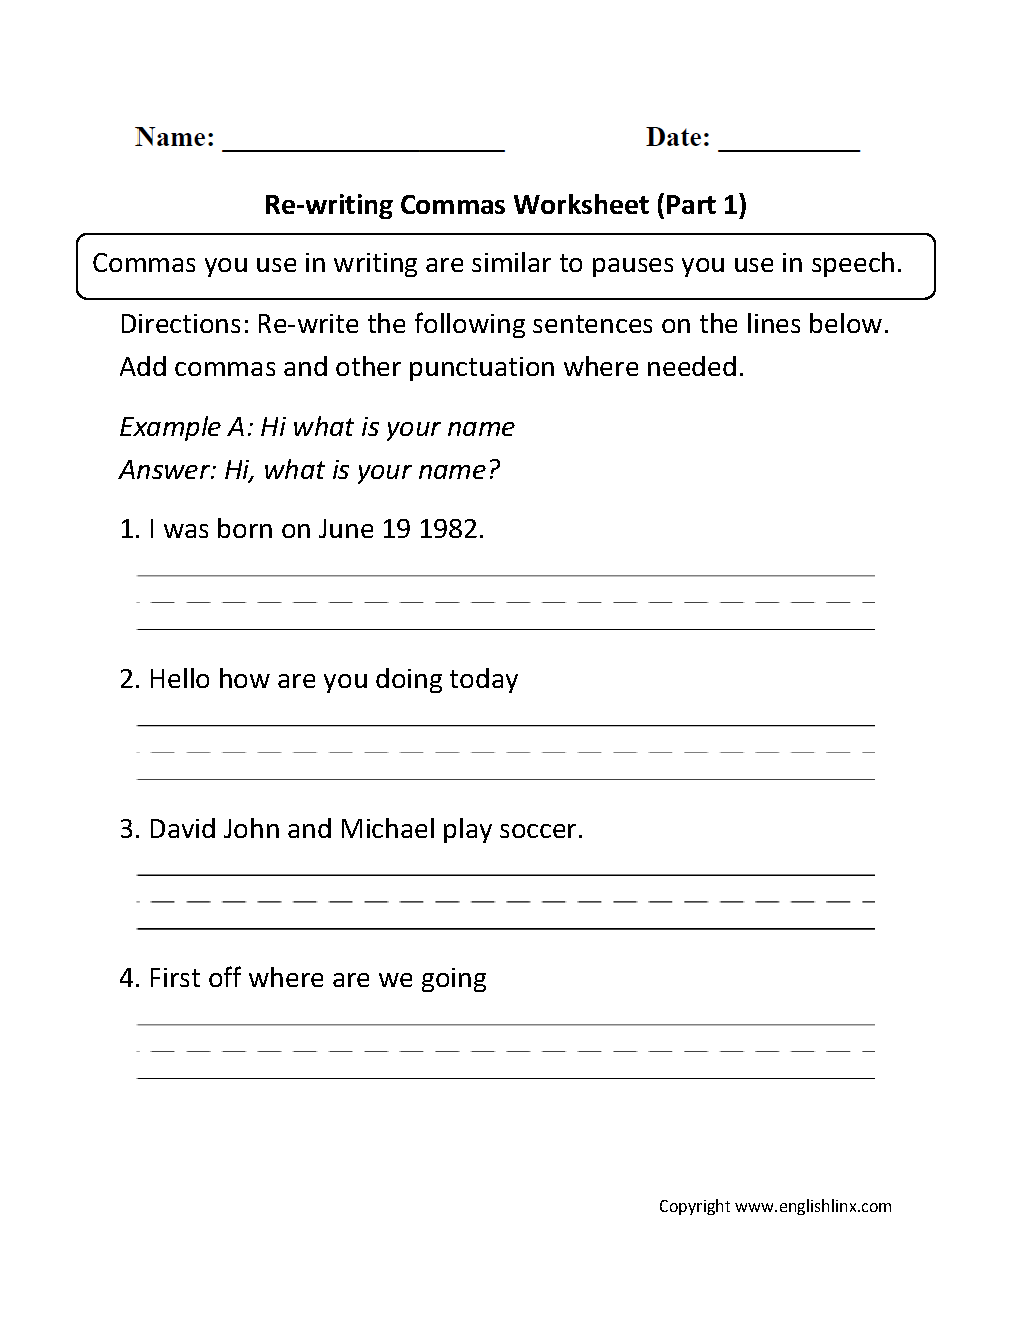 Worksheets Comma Worksheet englishlinx com commas worksheets part 1